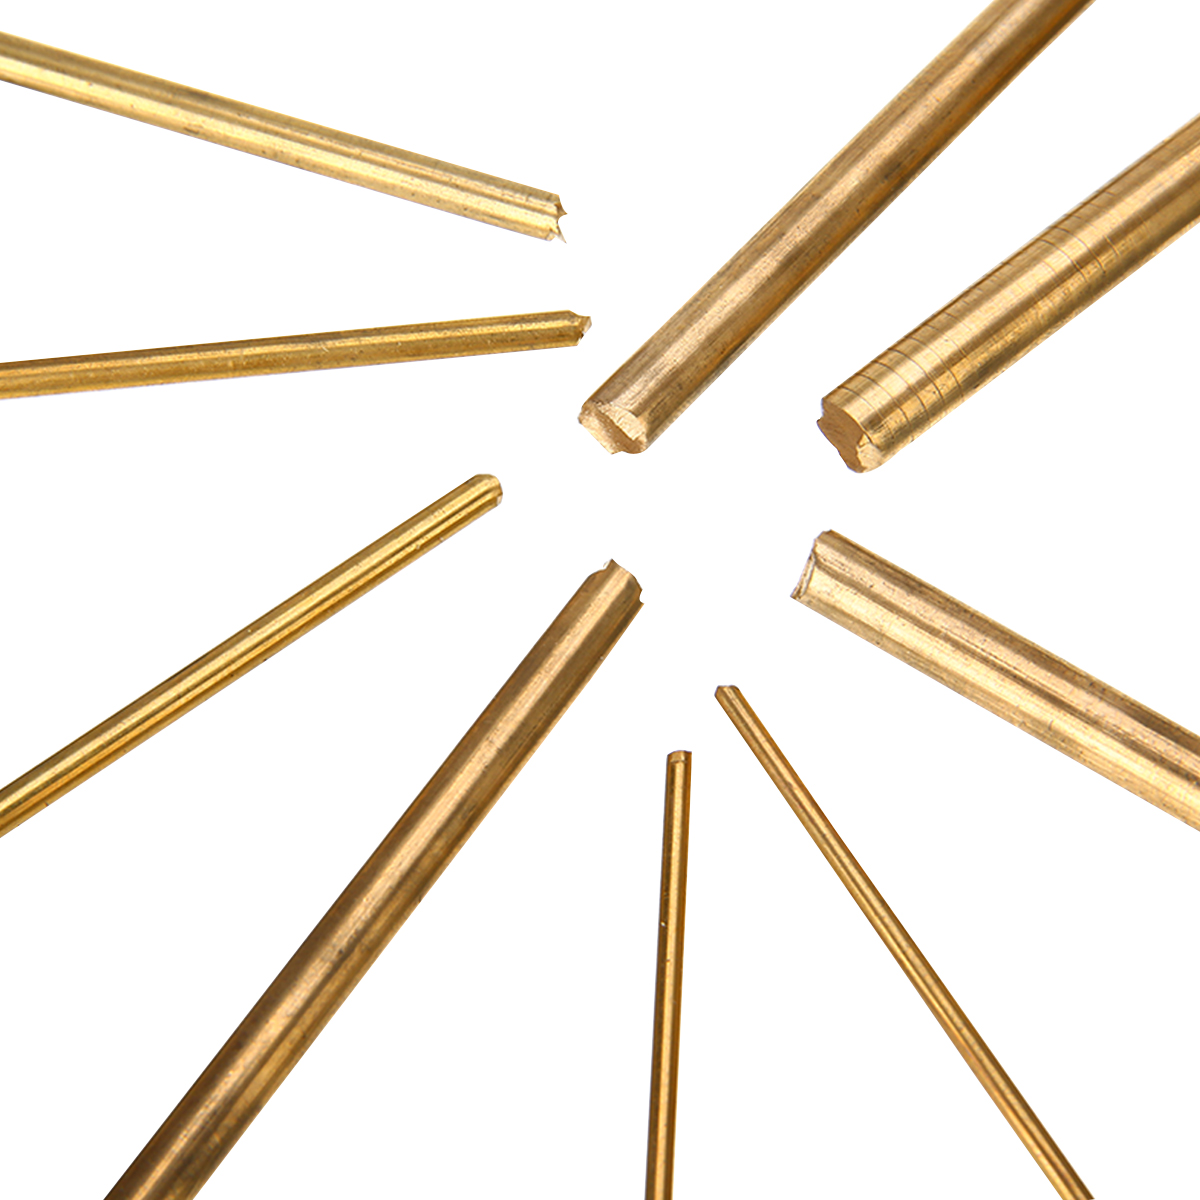 15pcs Brass Rod Bar Durable Round Connecting Rod Watchmaker Lathe DIY Watch Making Tool Craft Parts 100mm Length aftermarket tool 241008 or 241 008 connecting rod ultra max ii 695